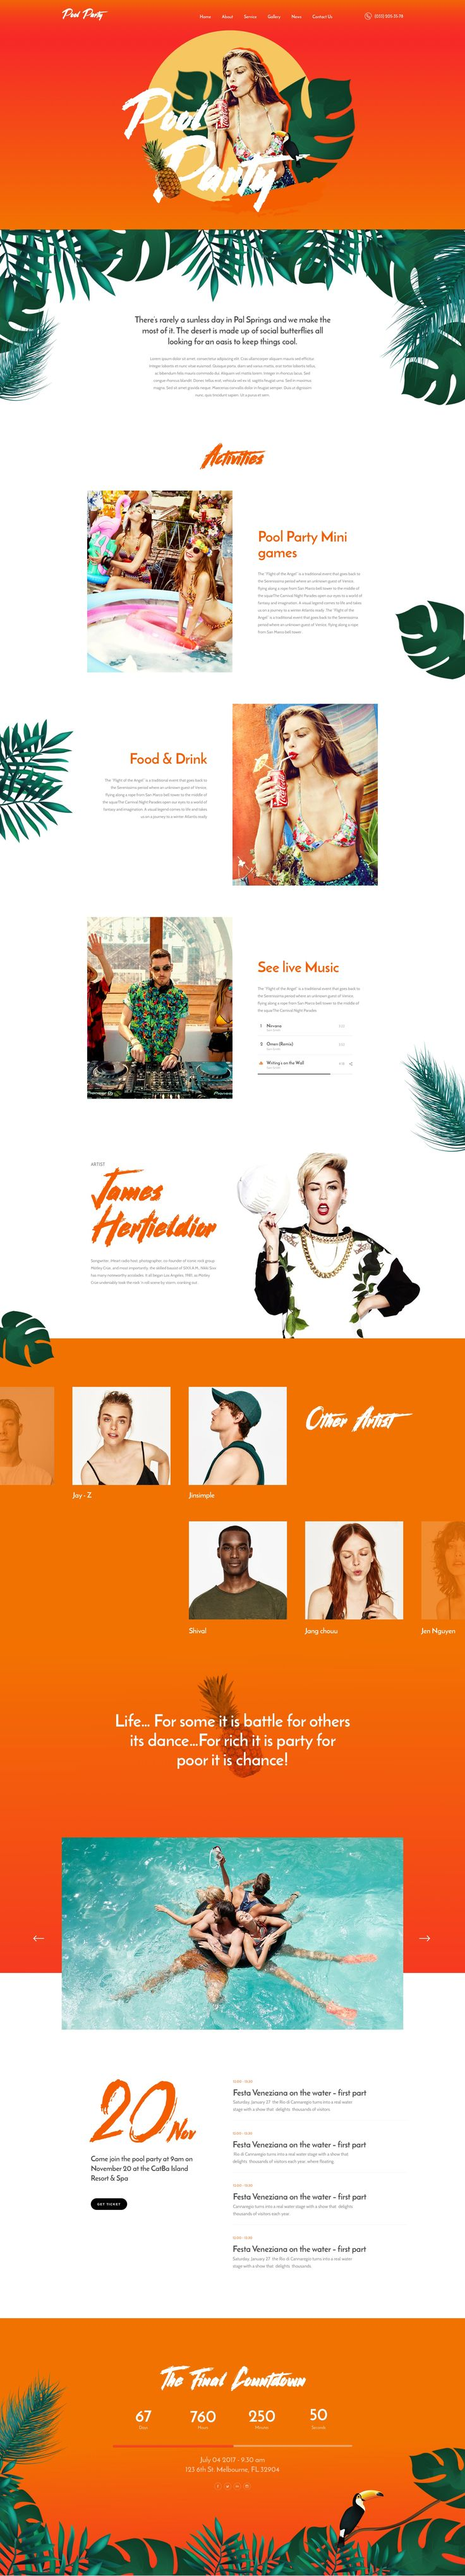 Pool Party – Landing Page For Pool Event